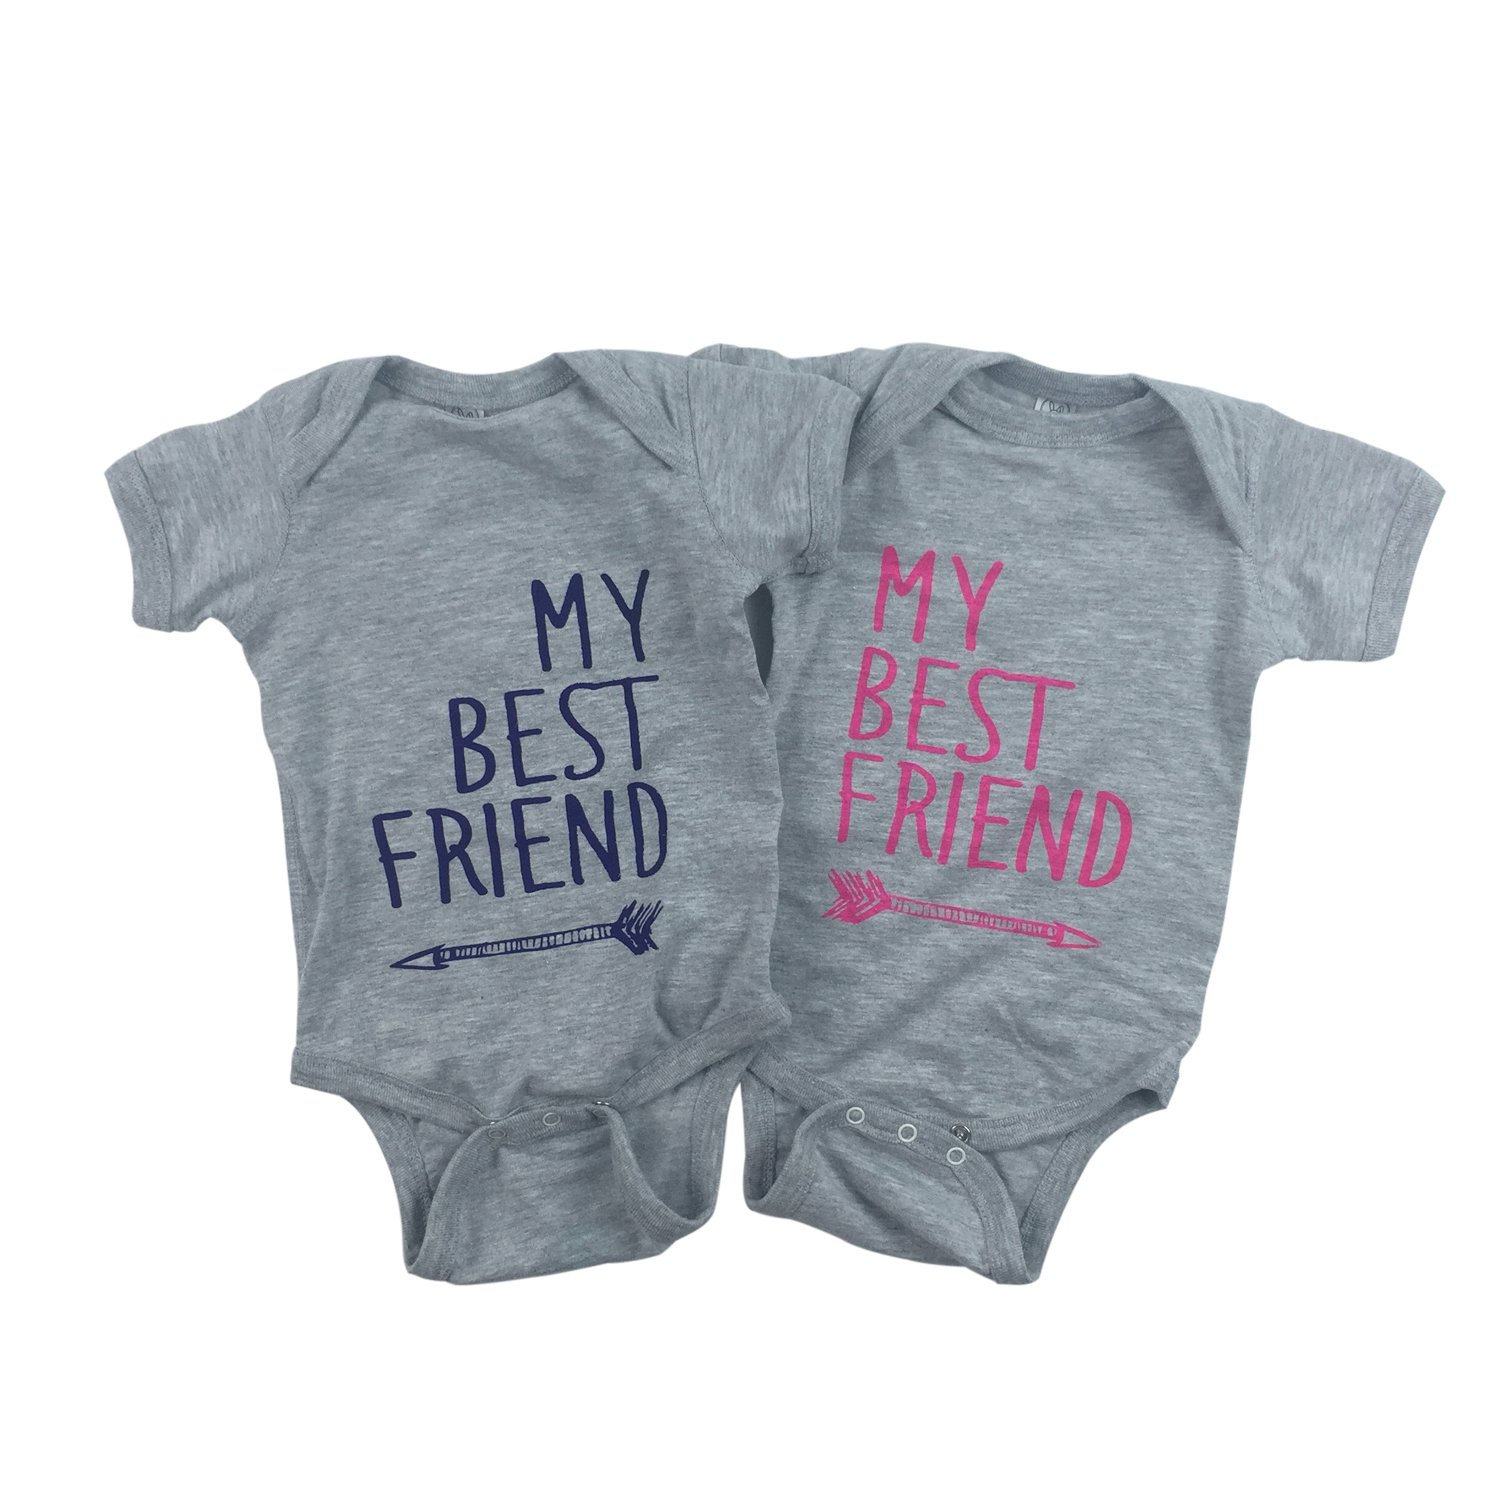 Amazon Boy Girl Twin Outfits Twin Boy and Girl Baby Clothes